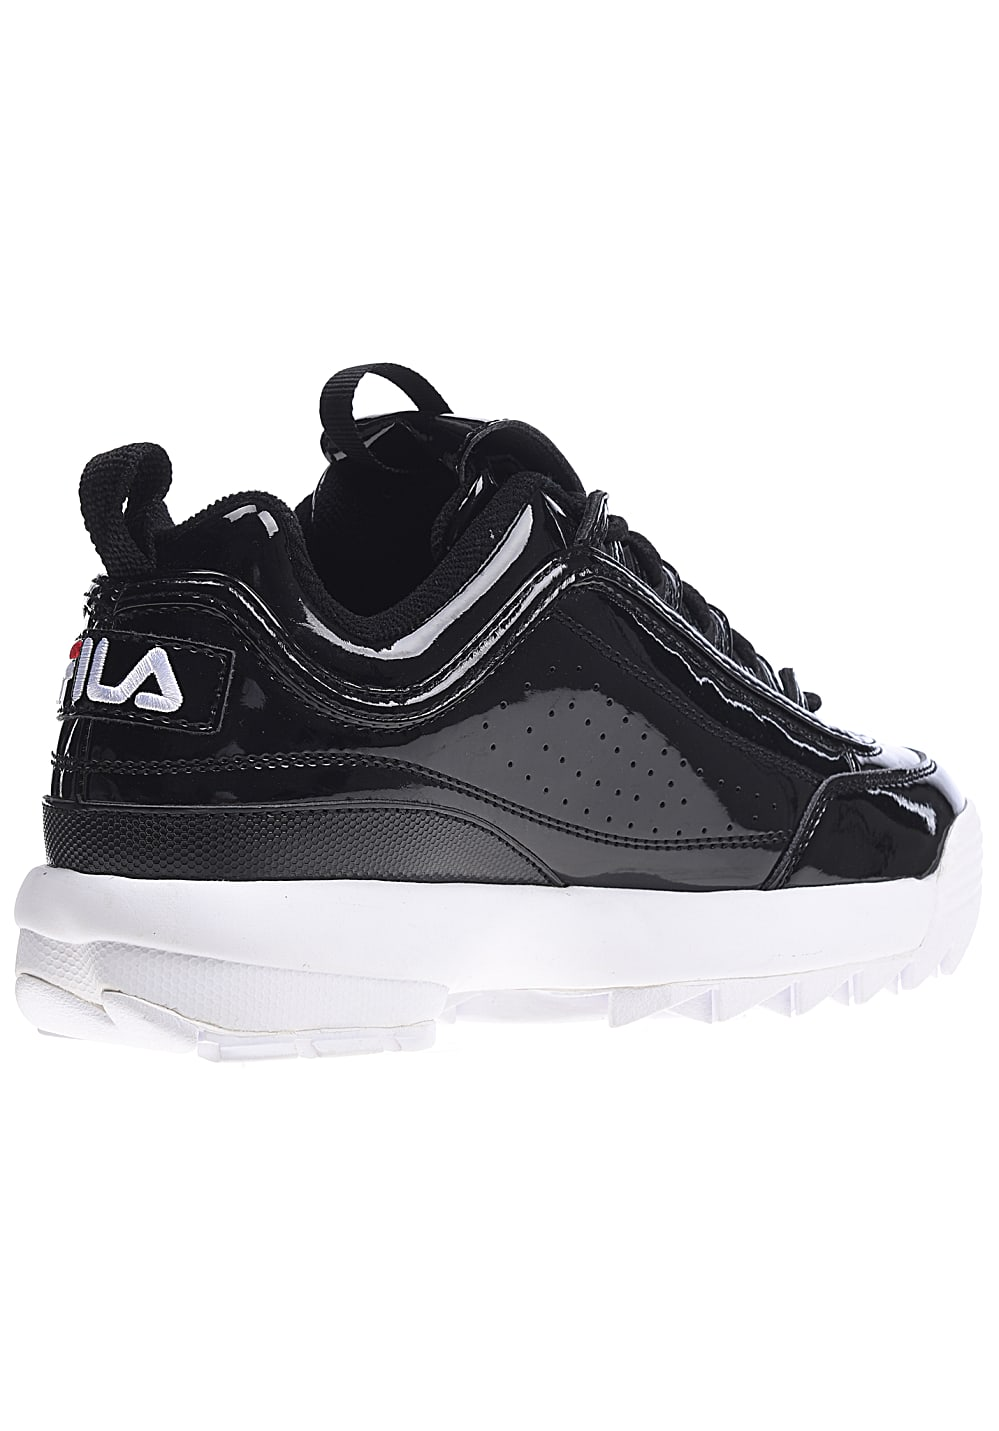 54f9dd332d8a Fila Heritage Disruptor M Low - Fashion Shoes for Women - Black